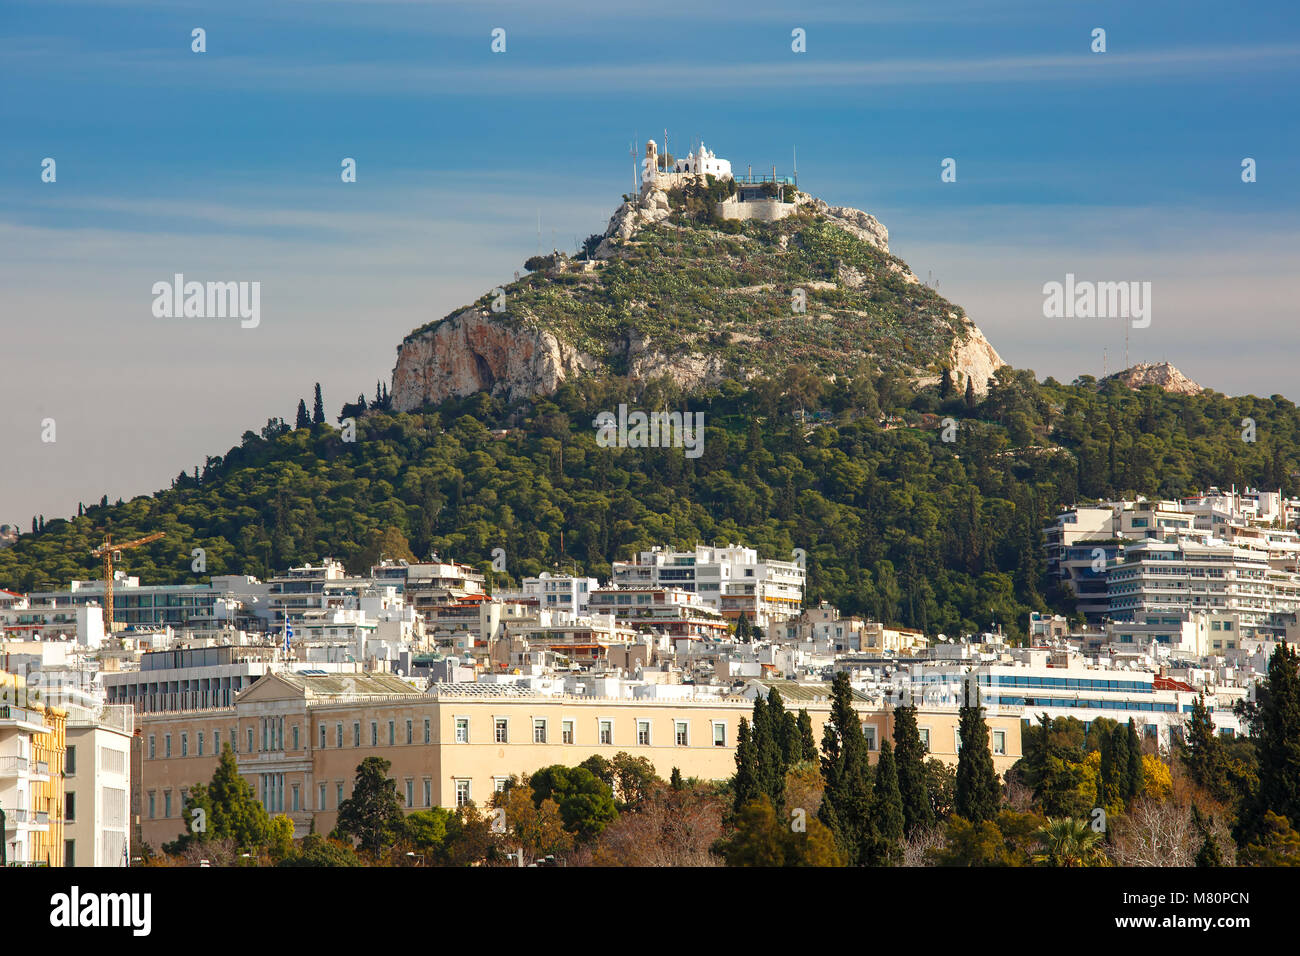 Aerial city view in Athens, Greece Stock Photo